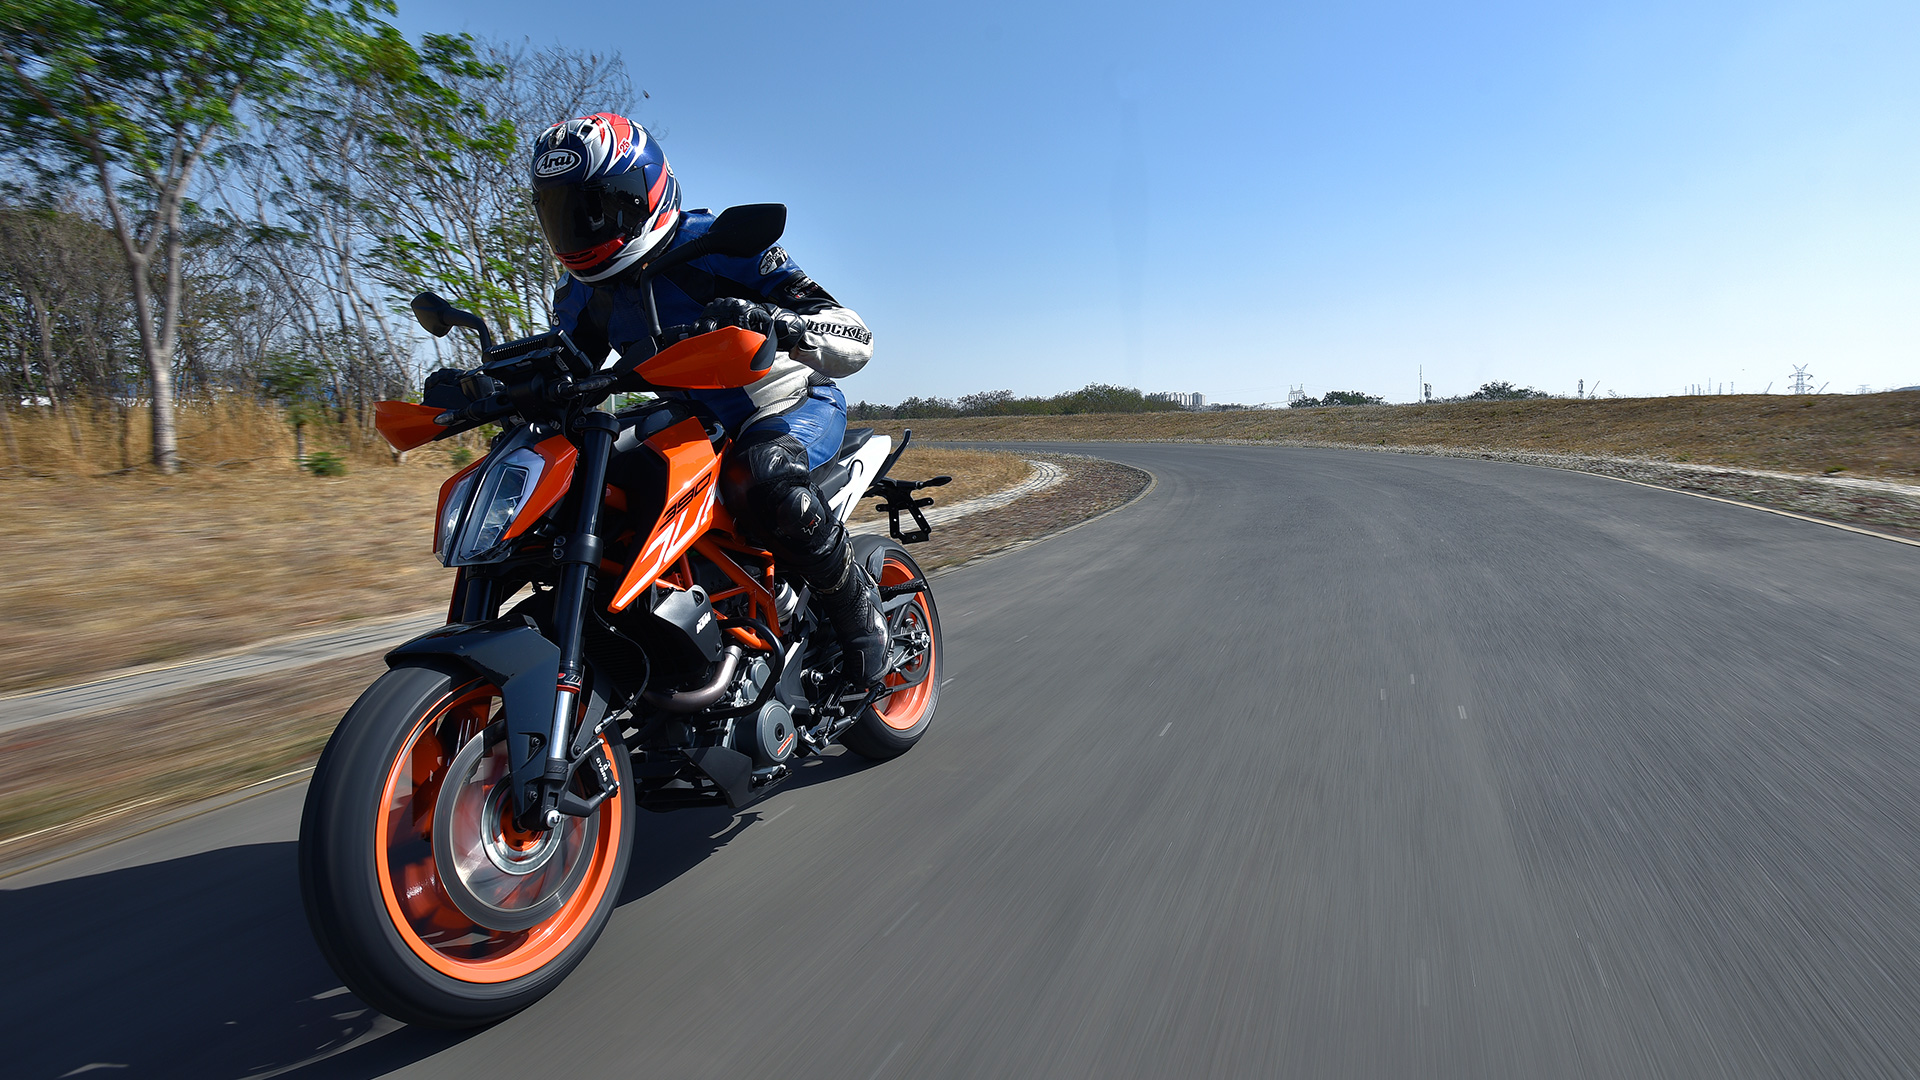 Ktm Duke Mileage On Road